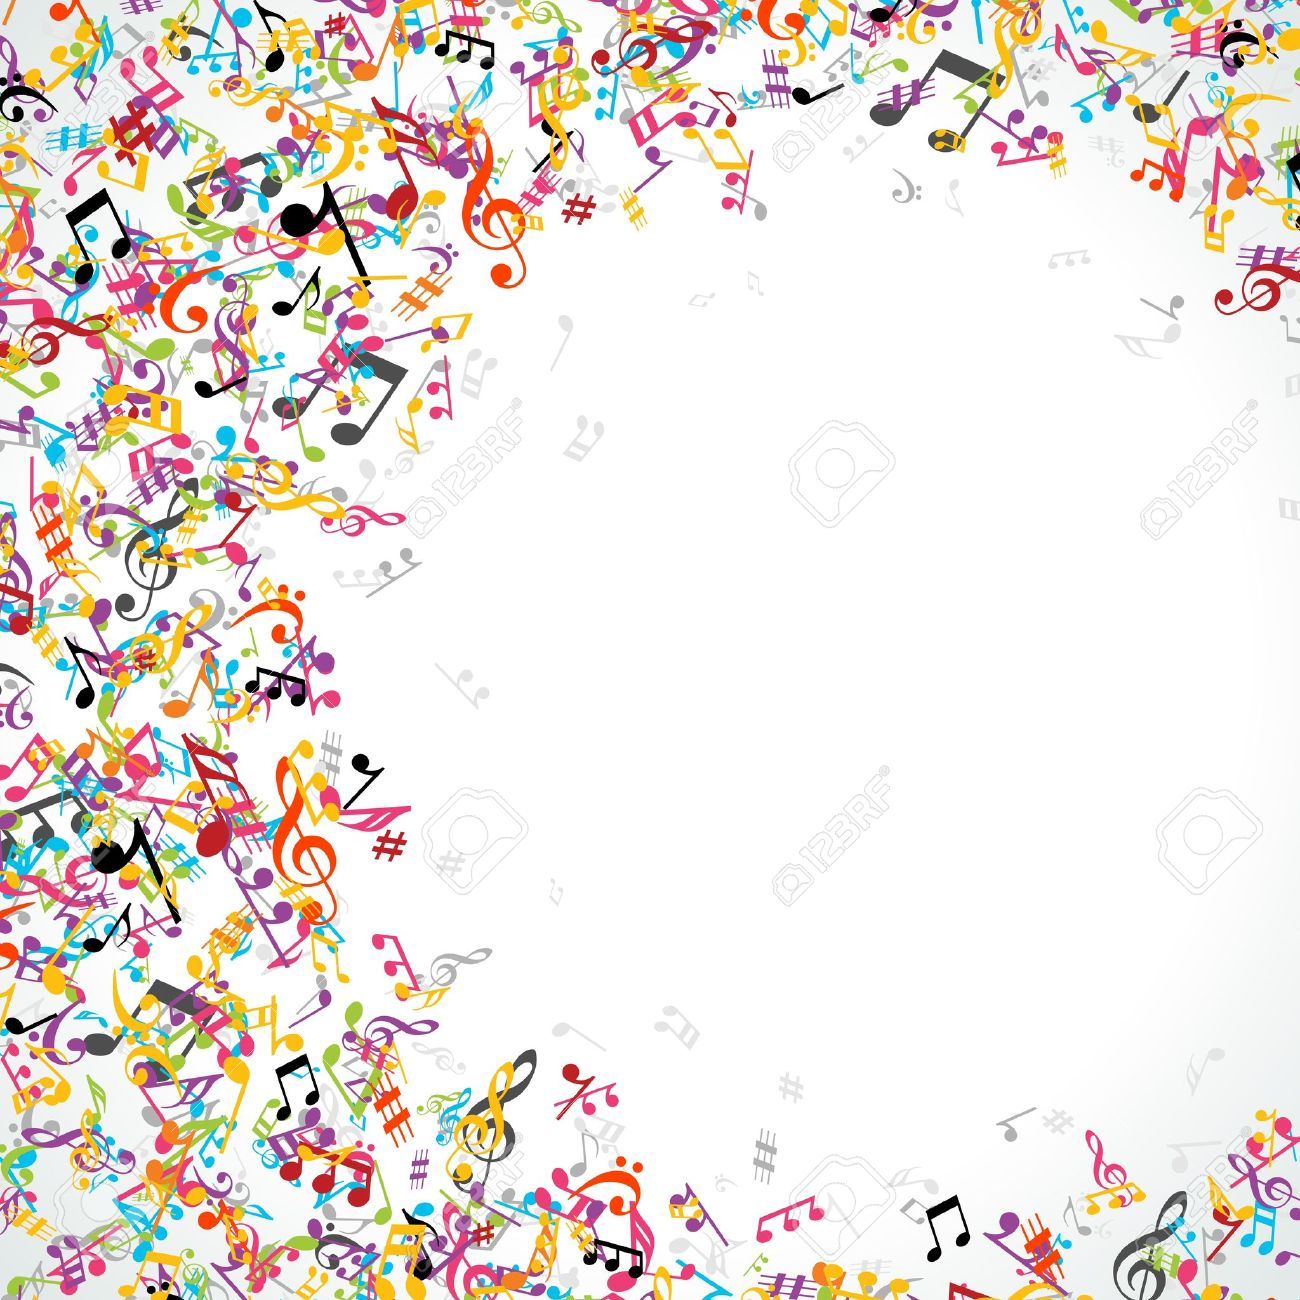 Colorful music notes background royalty free cliparts vectors and colorful music notes background stock vector 13260254 voltagebd Image collections